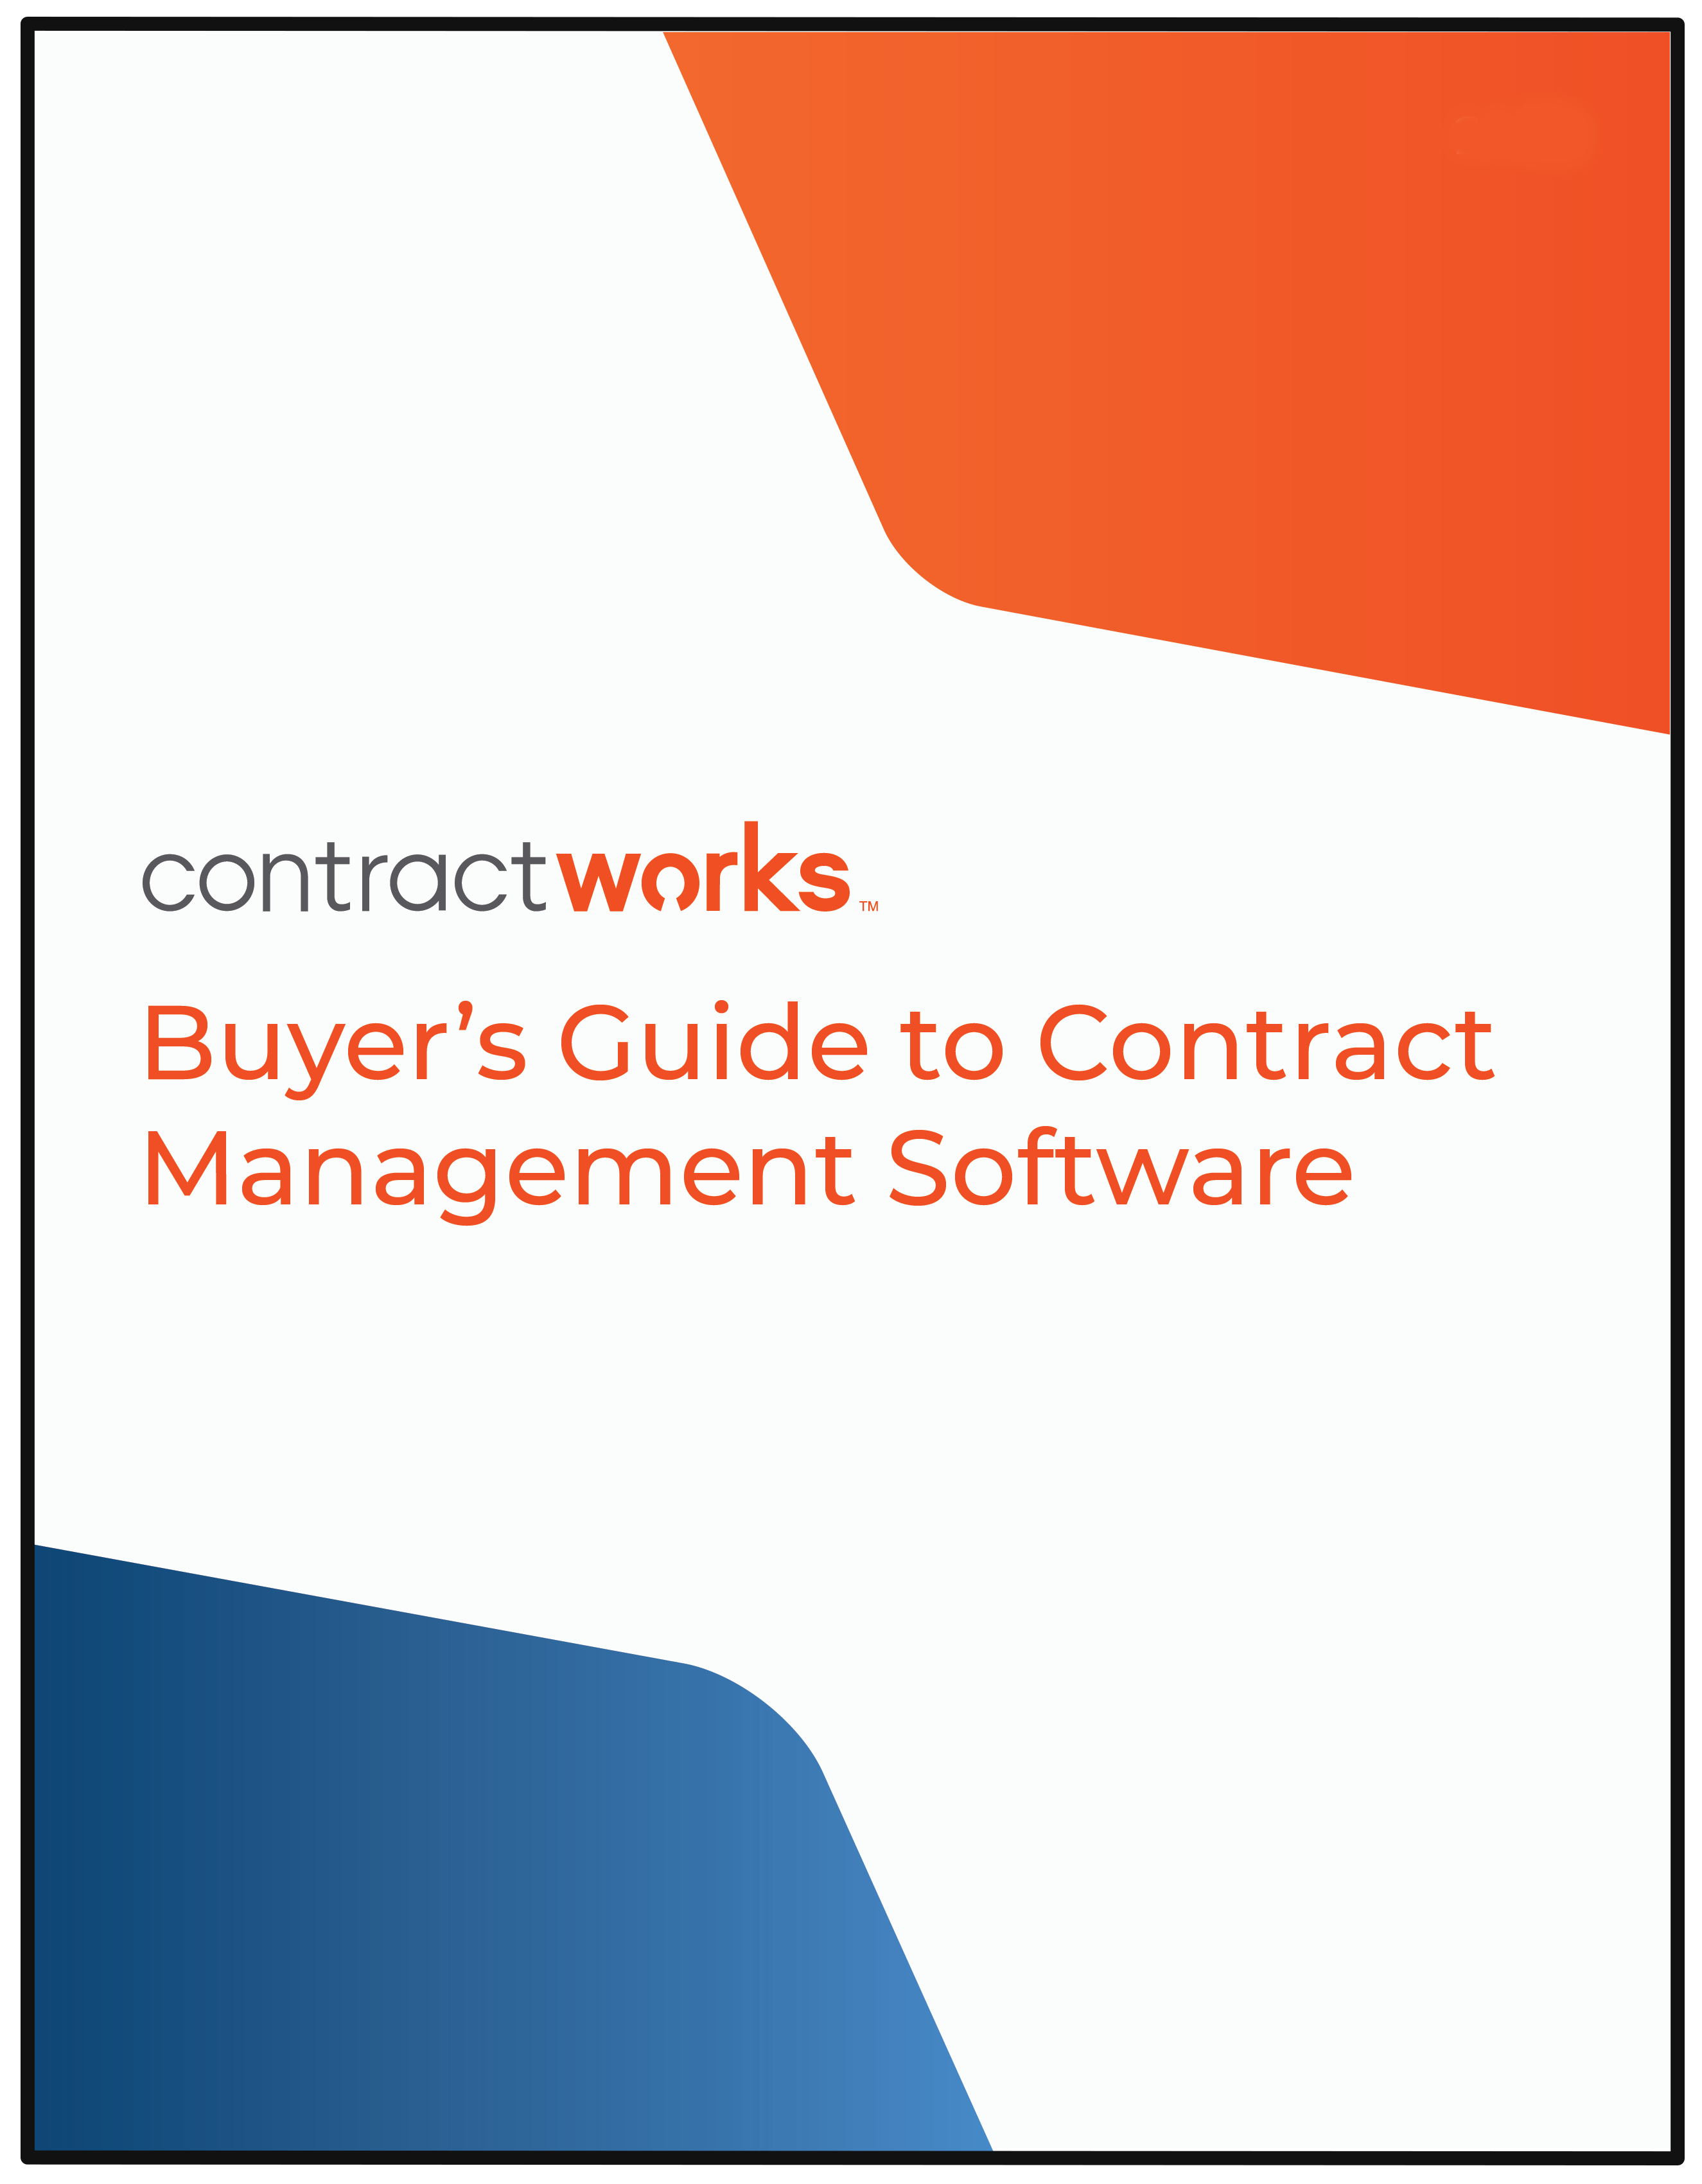 The Buyer's Guide to Contract Management Software